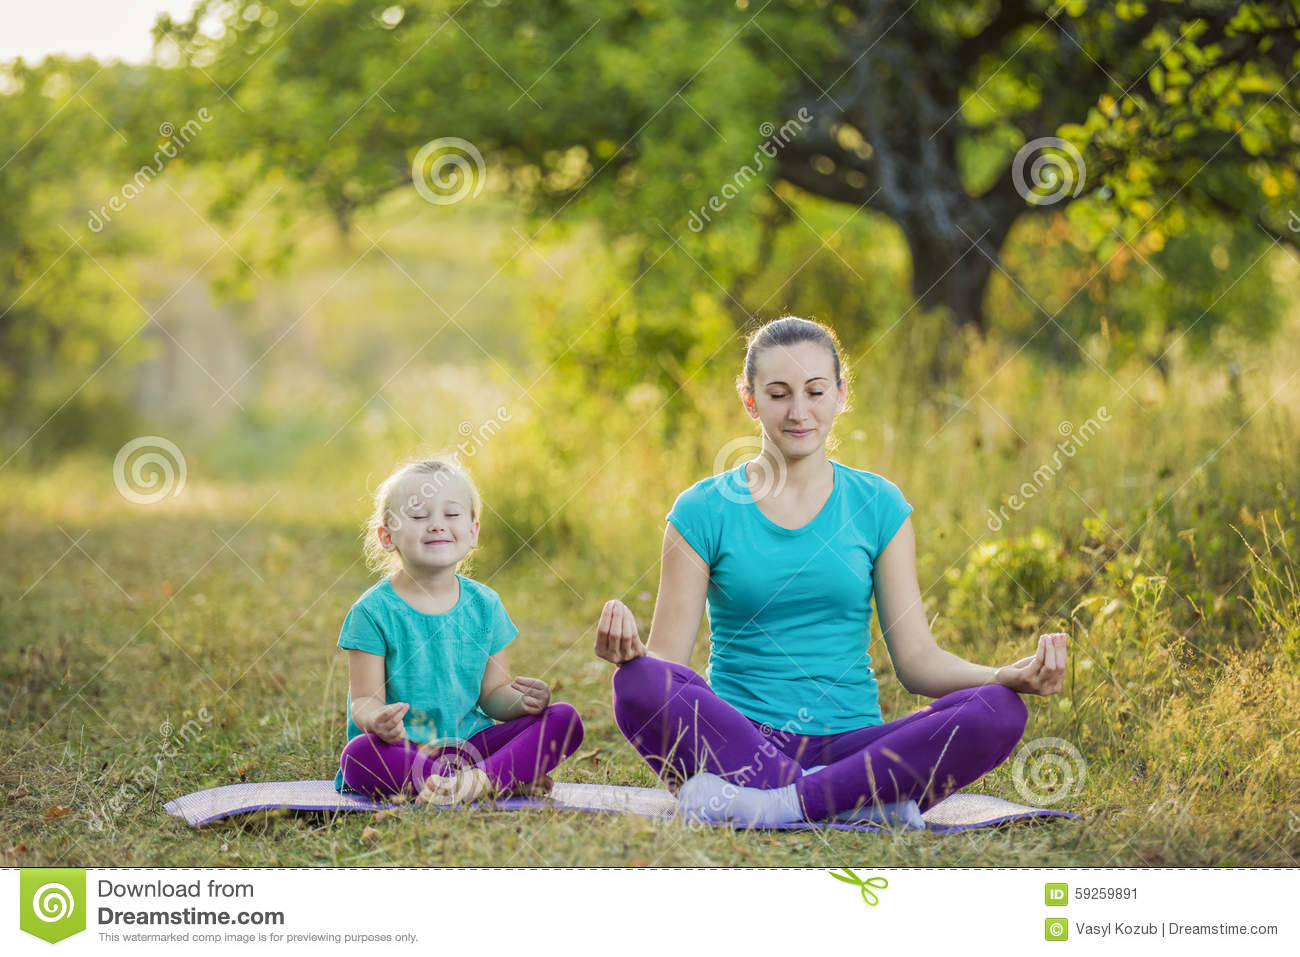 Mom And Child In The Lotus Position Stock Photo - Image ...